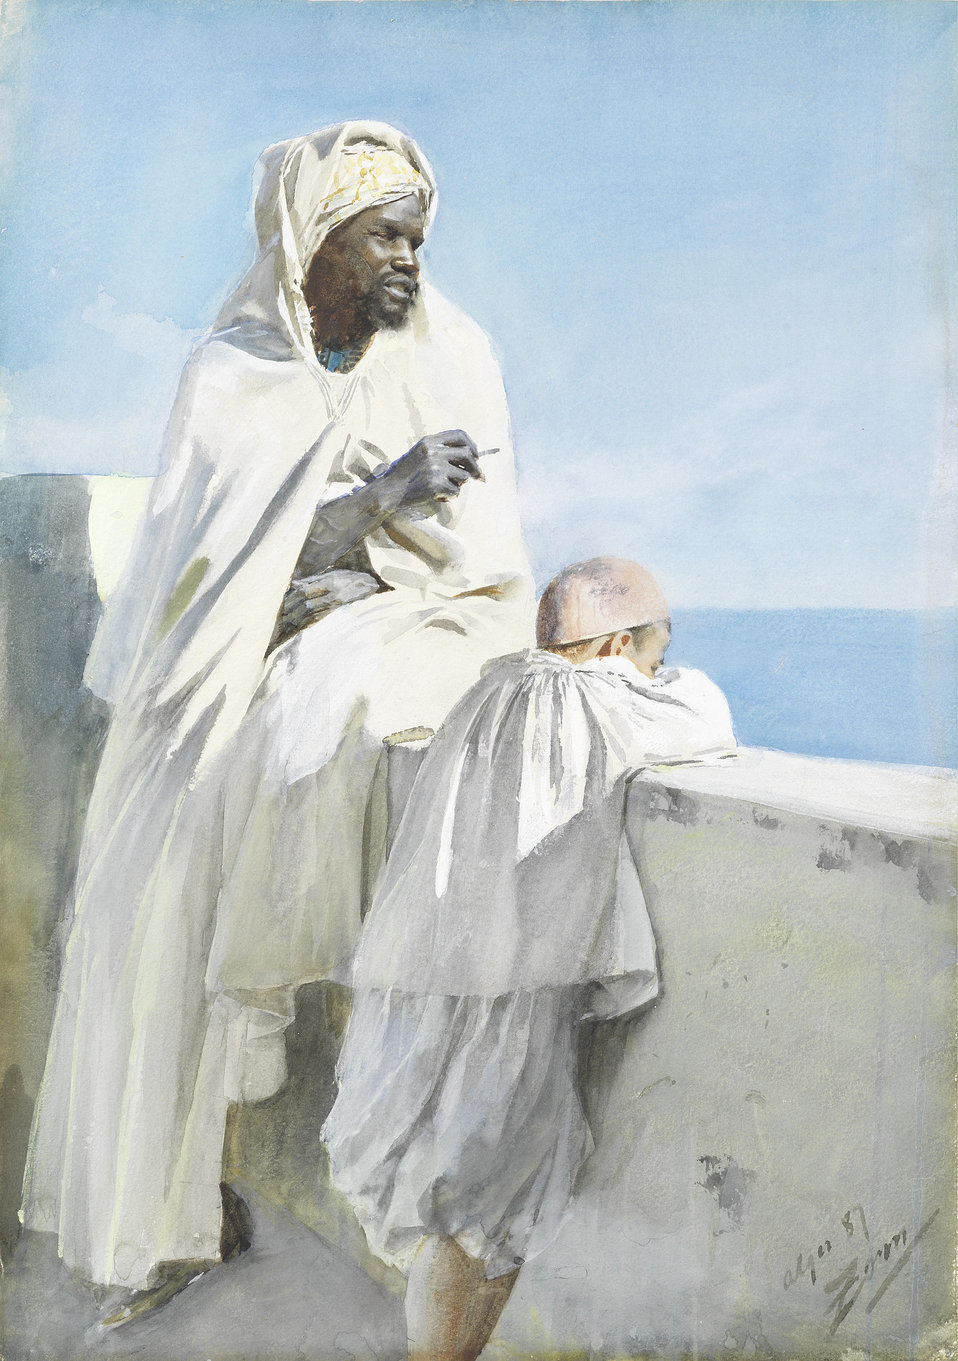 Man and boy in Algiers. Signed, inscribed and dated 'alger 87/Zorn' (lower right). Watercolour and bodycolour on paper laid down on board. 48.7 x 34.7 cm